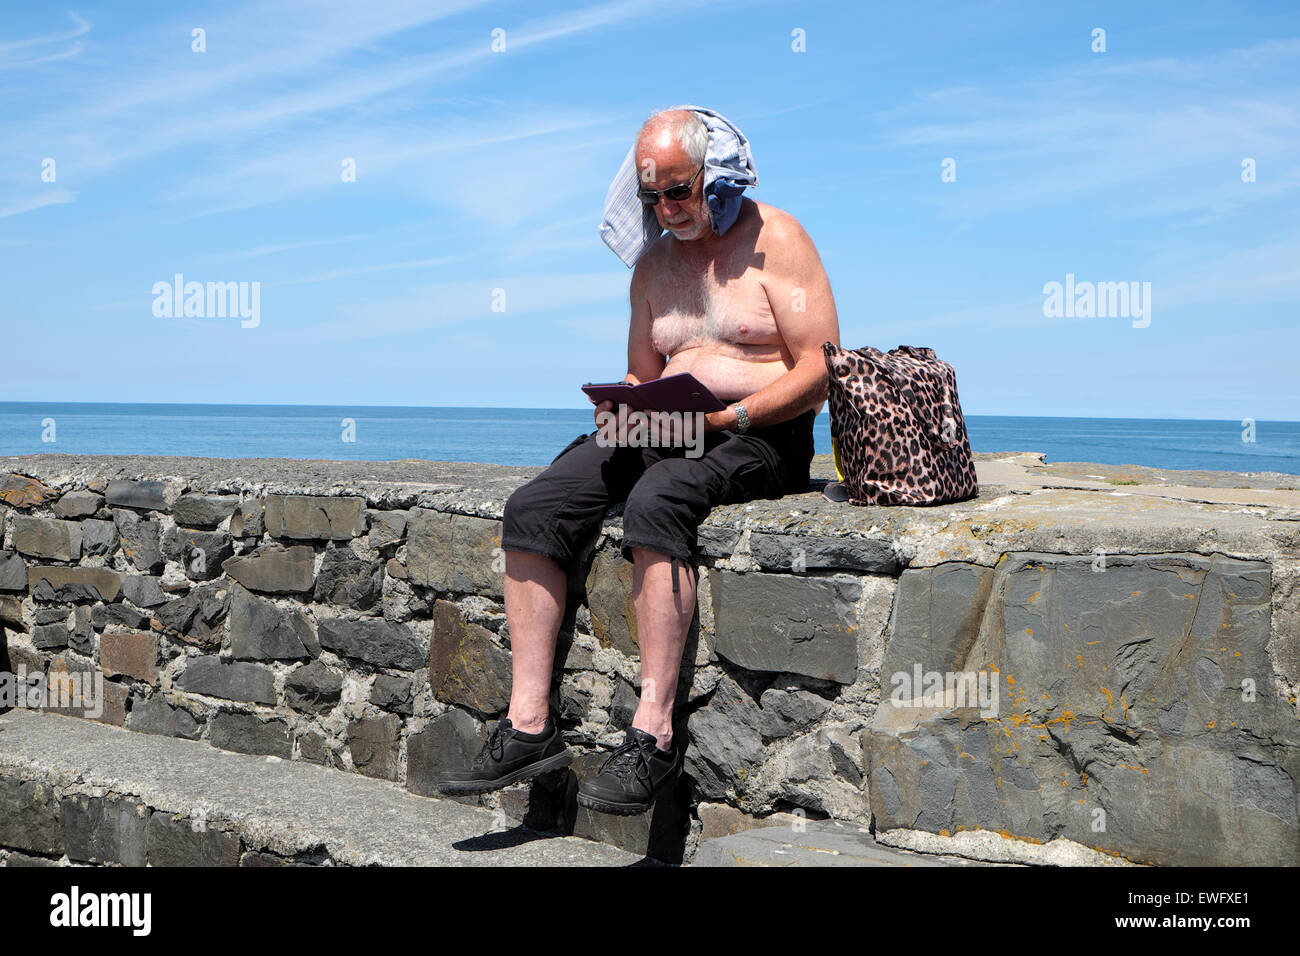 A senior man reads a kindle book with a tshirt protecting neck in hot sunshine at New Quay, Ceredigion Wales UK - Stock Image